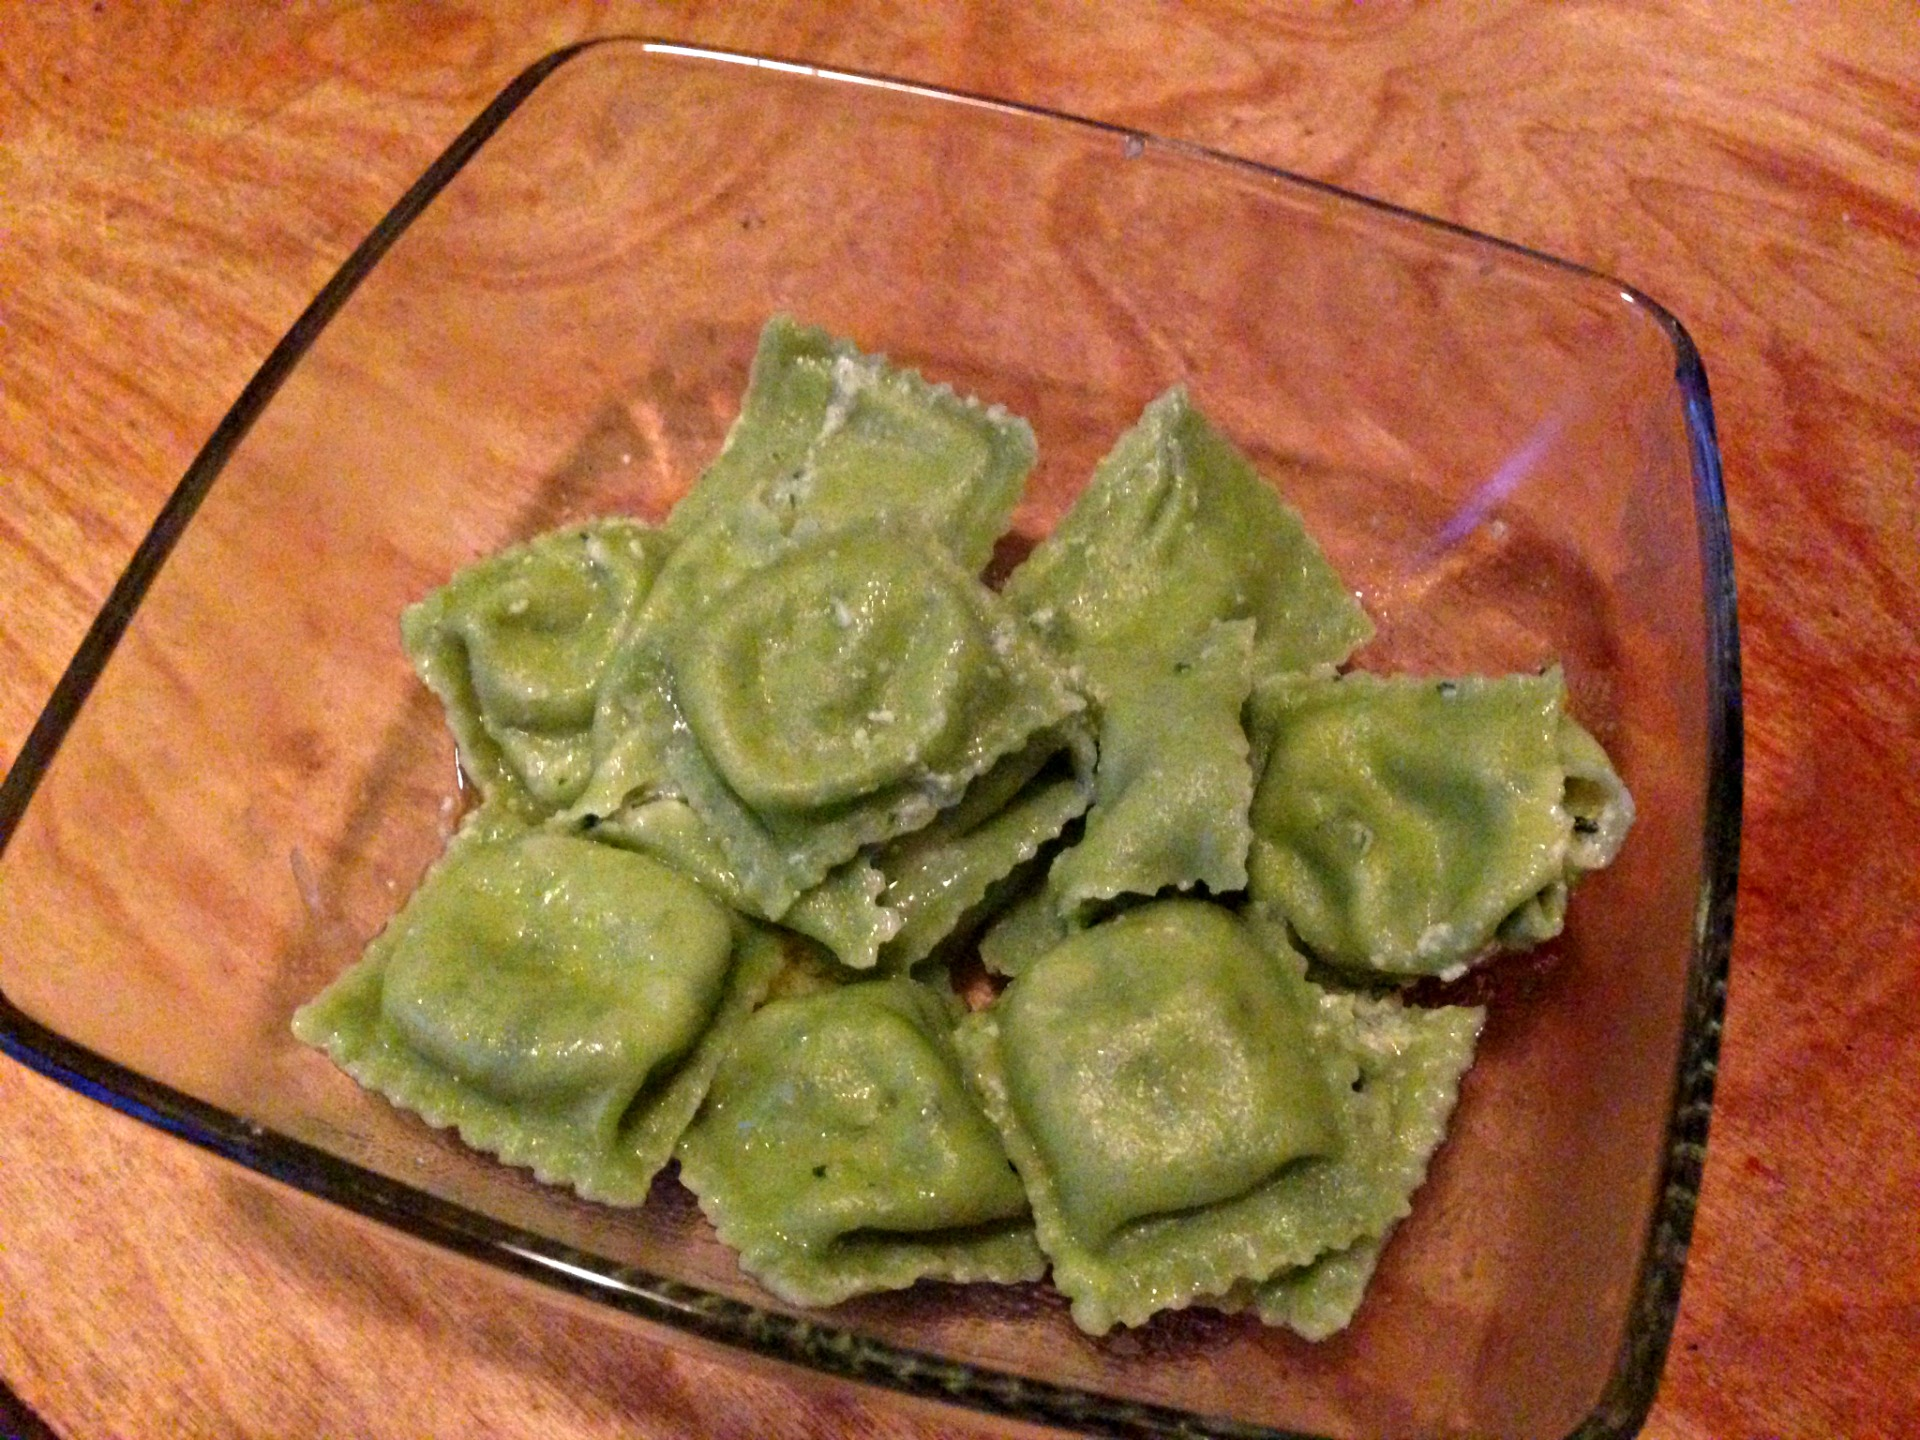 Spinach and ricotta ravioli from Genova Delicatessen.